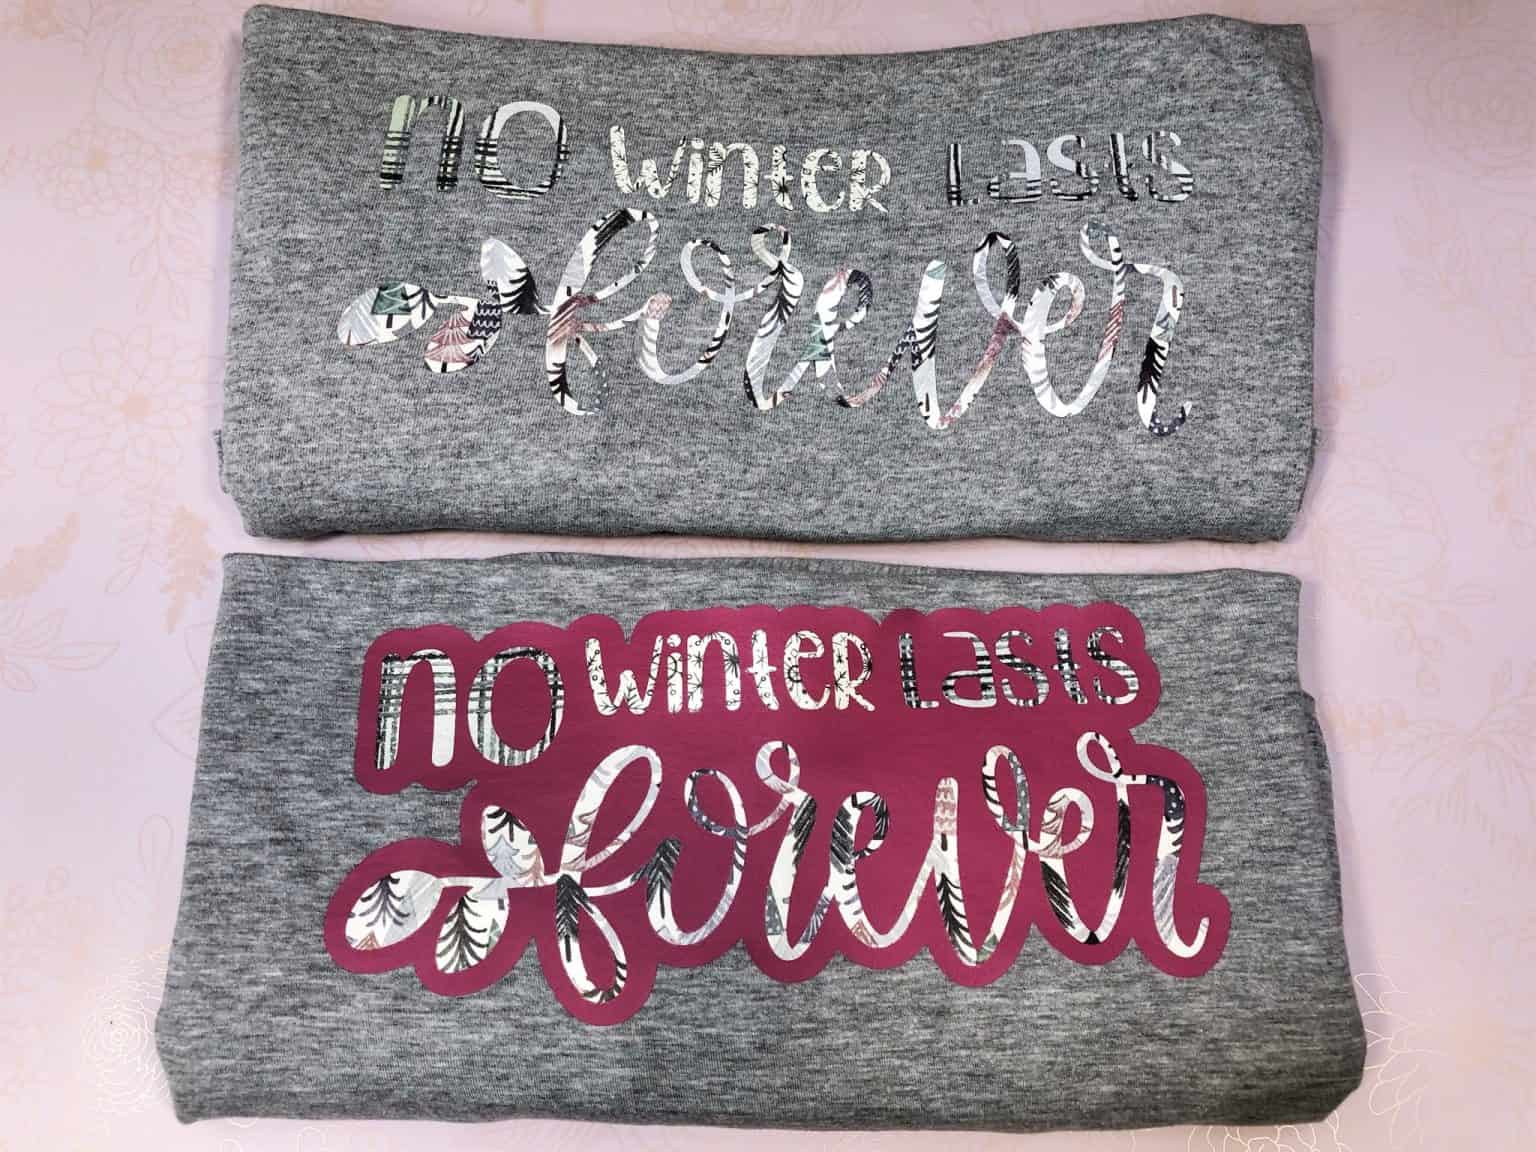 examples of using a Cricut offset with patterned heat transfer vinyl and without a cricut offset too